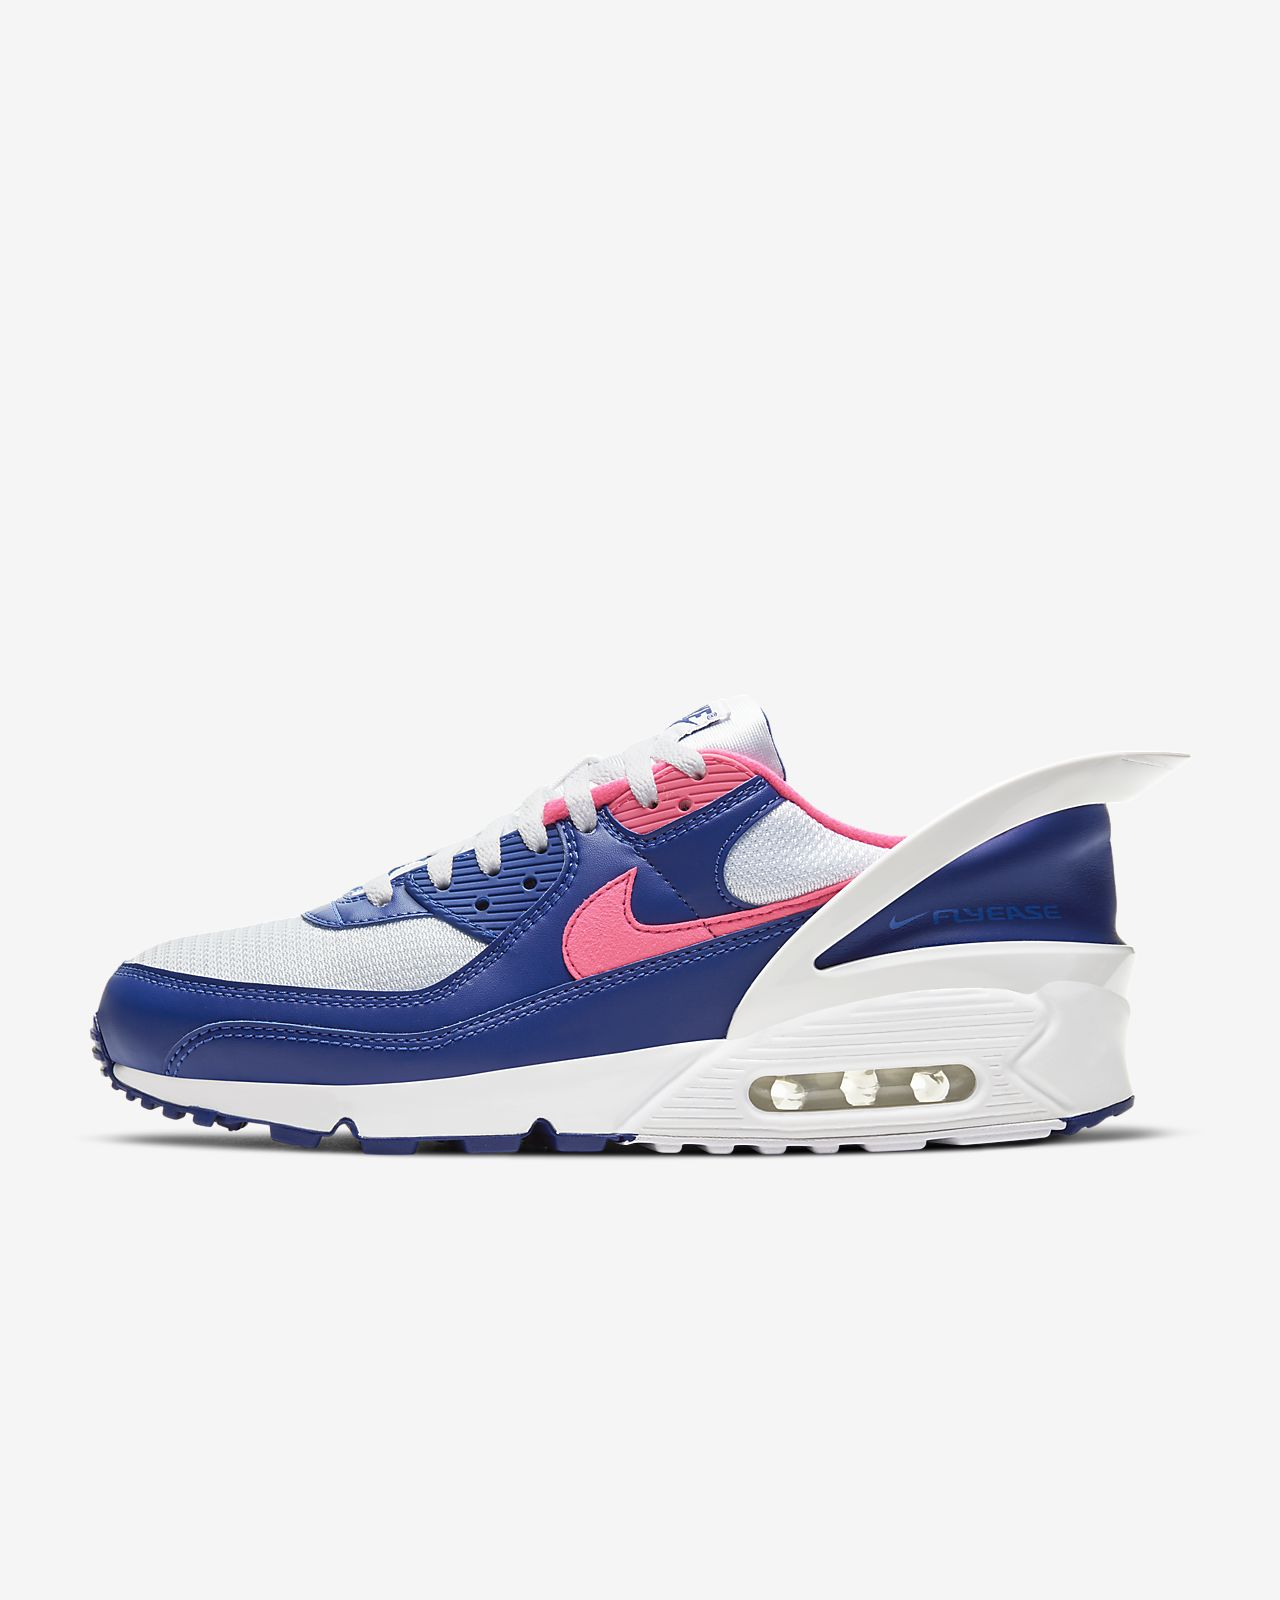 Buty NIKE AIR MAX 90 ESSENTIAL | Air max 90, Nike air max